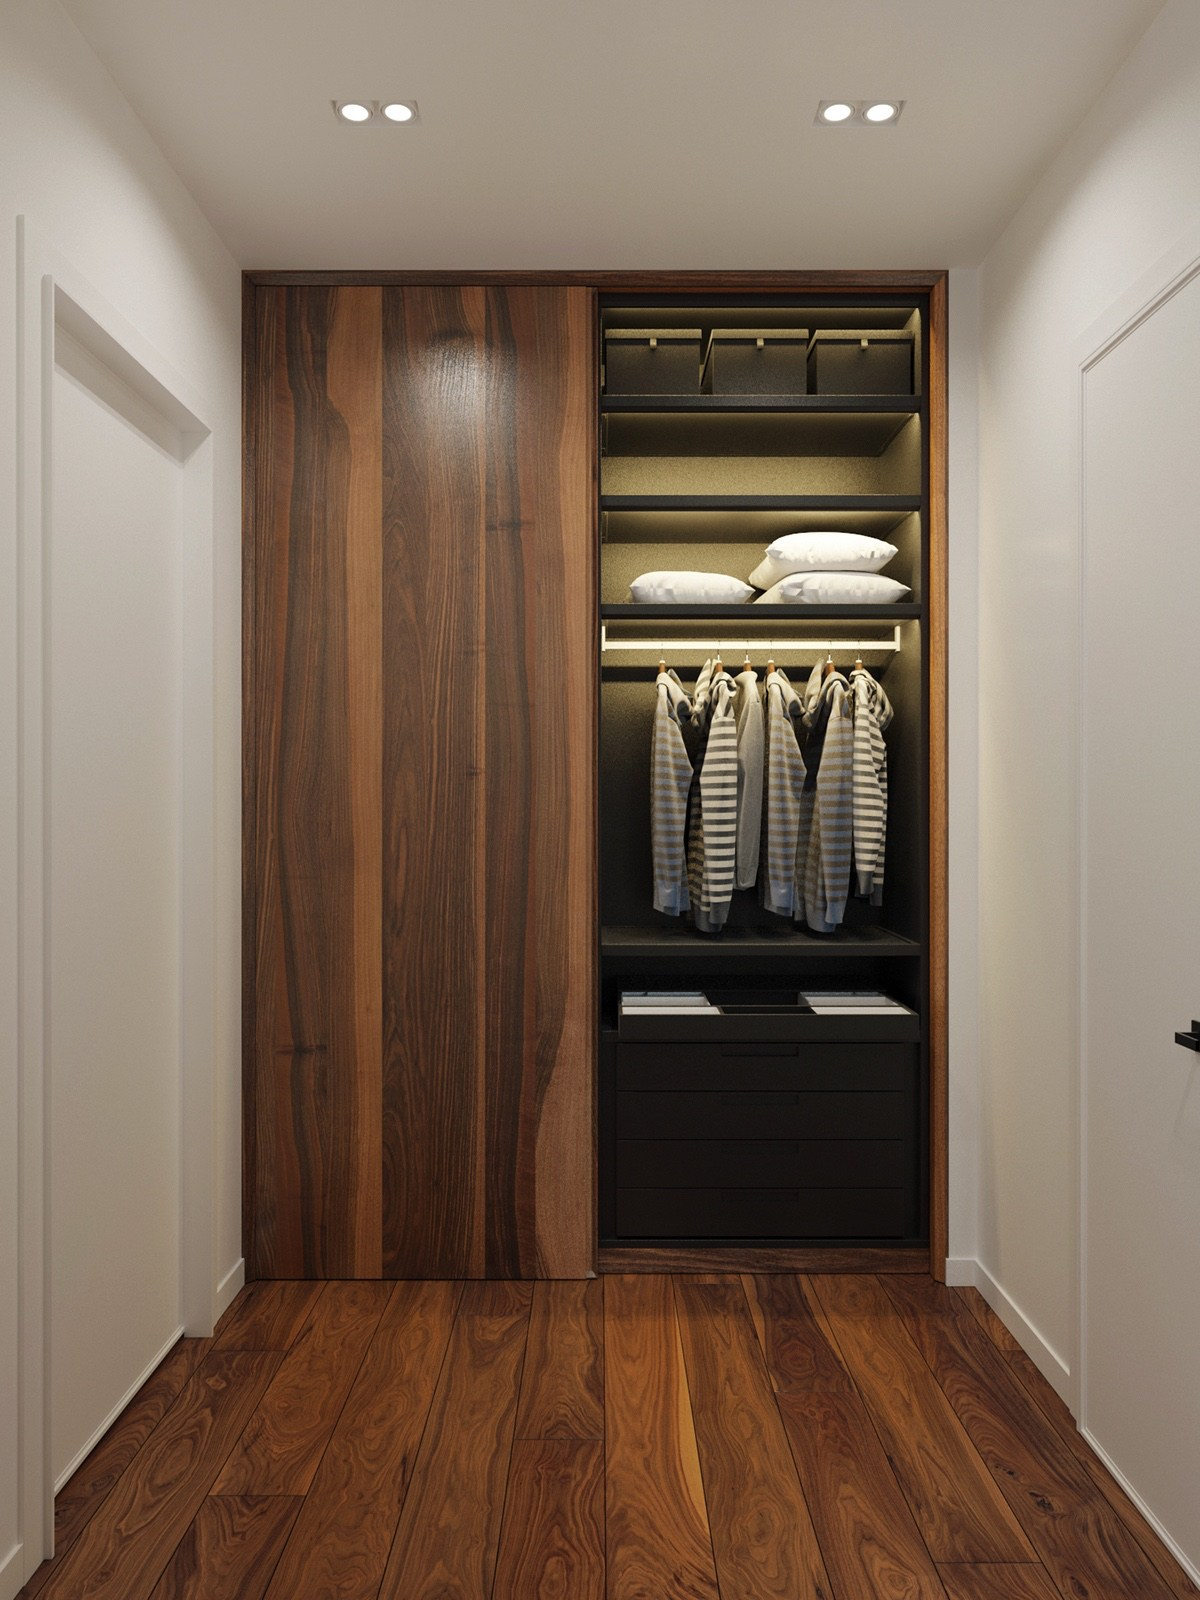 Wooden panelled wardrobe spacious and elegant